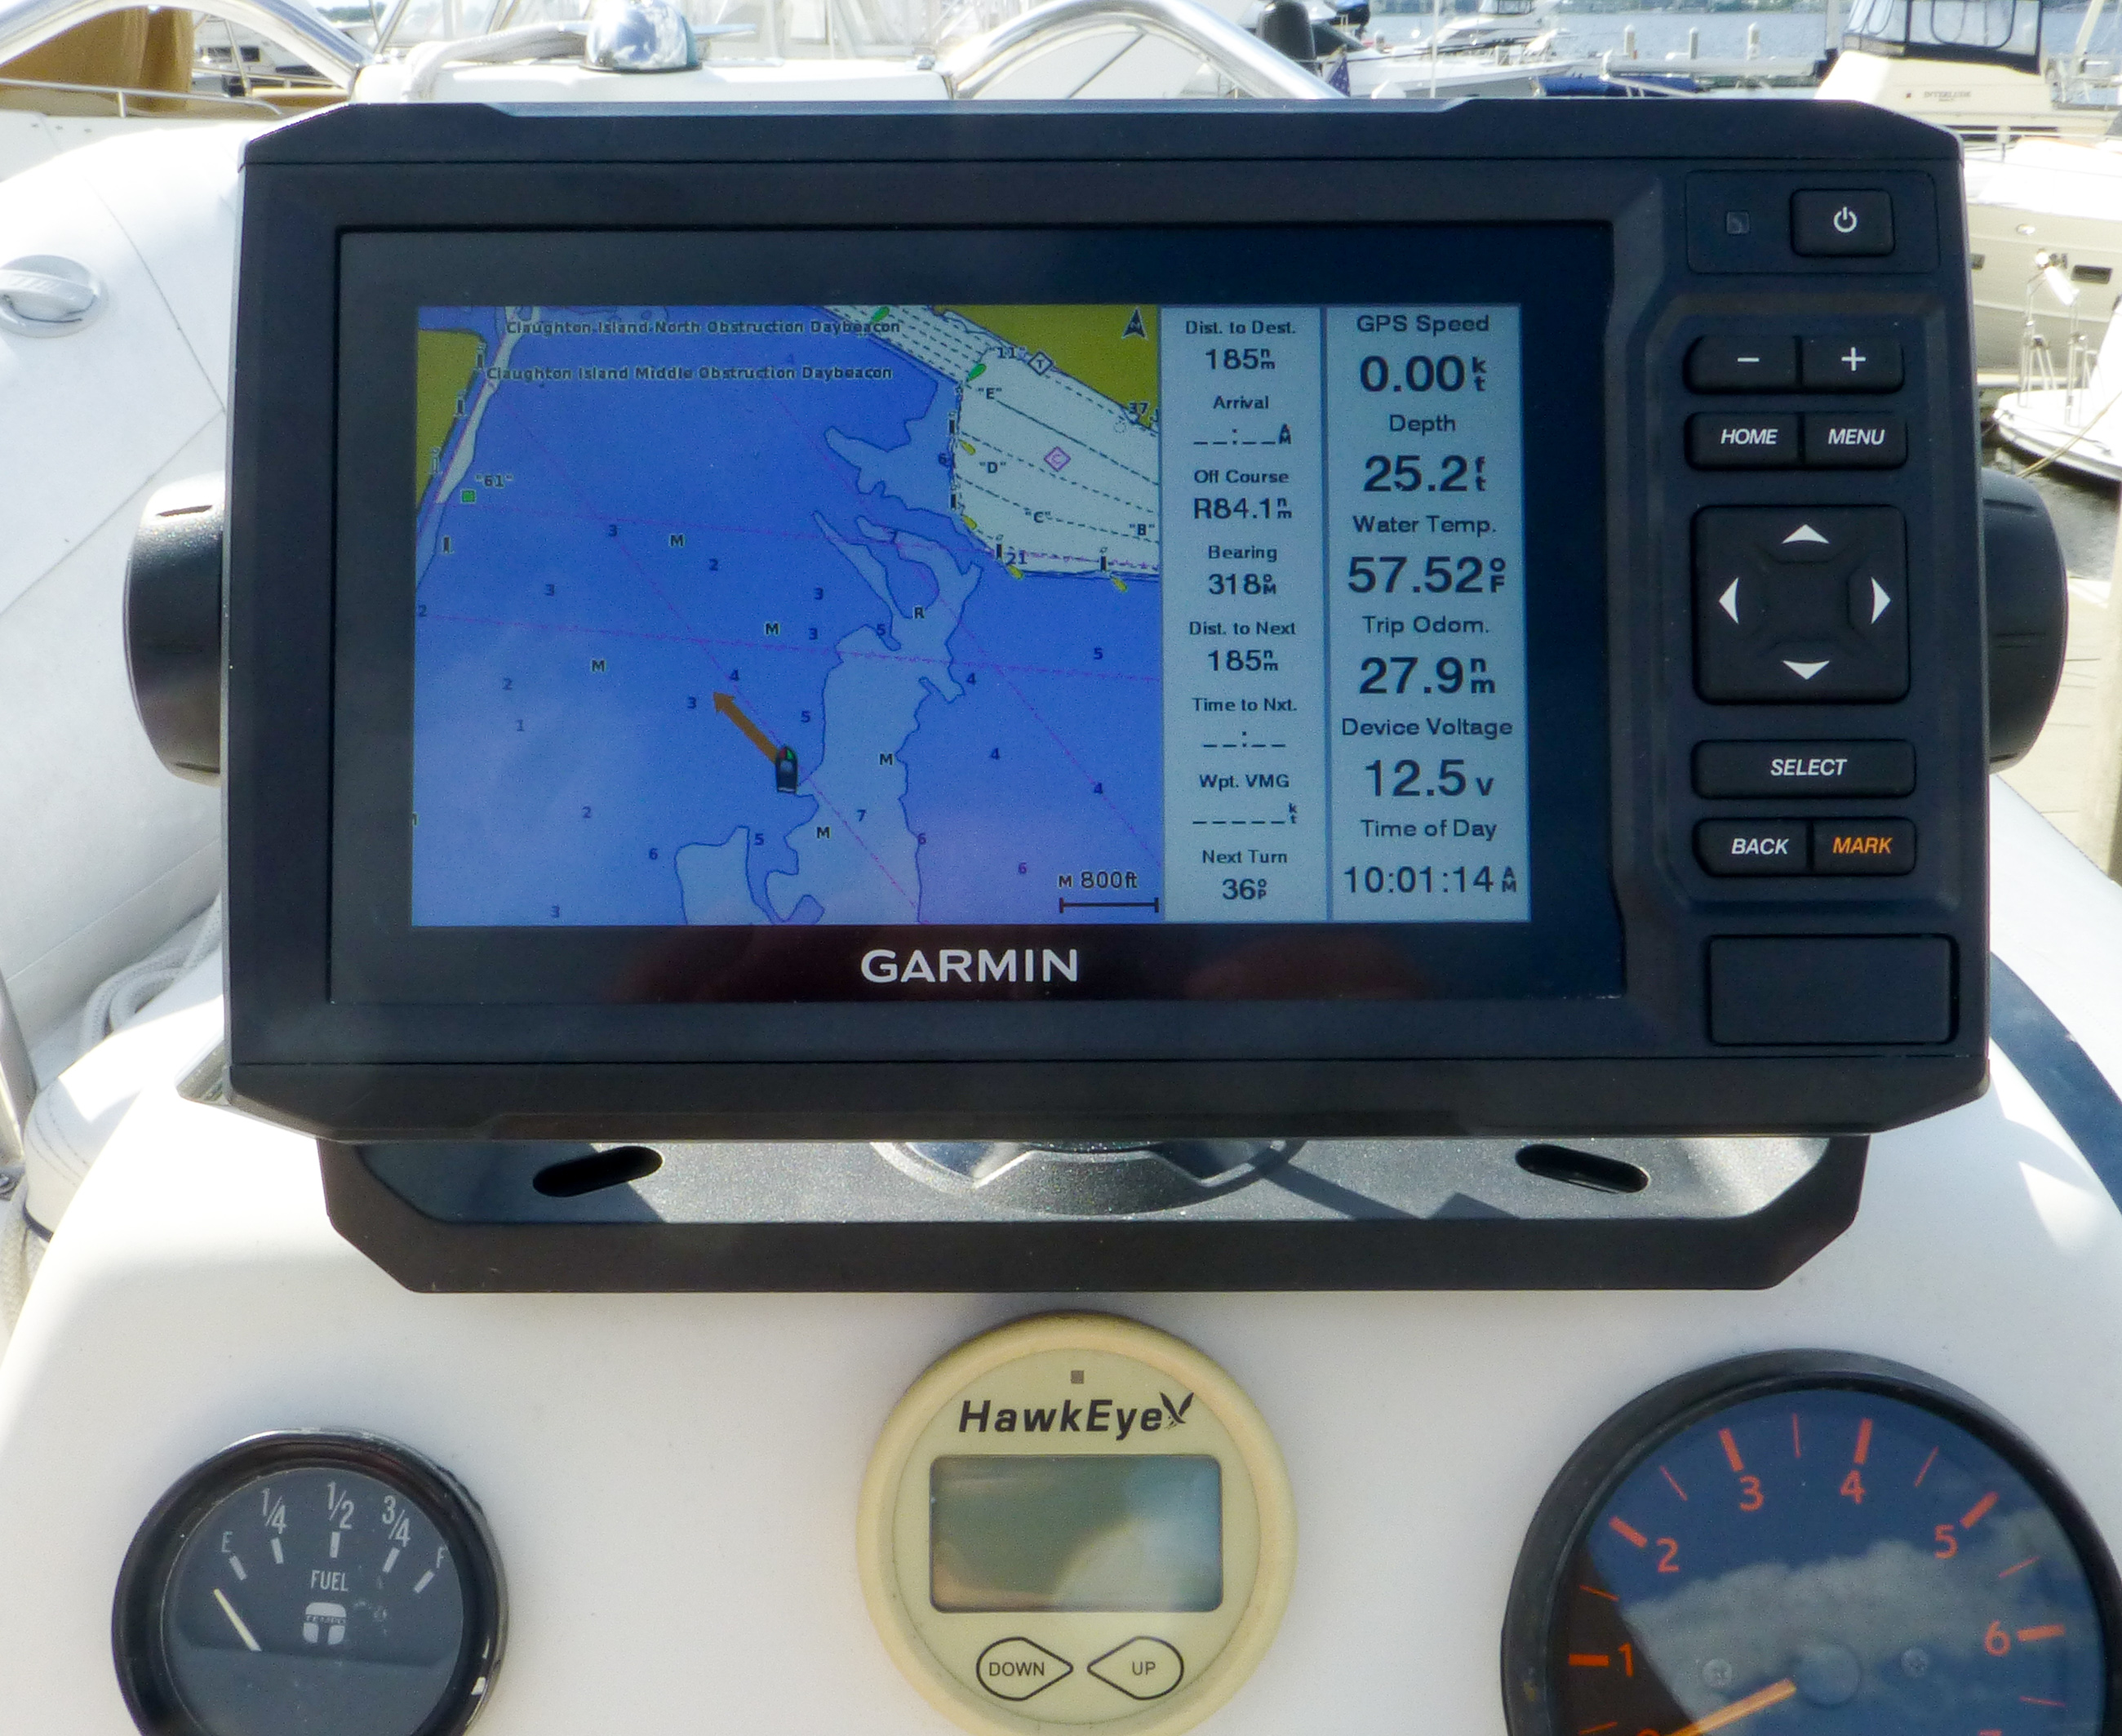 Dinghy as depth scout with Garmin QuickDraw Contours - Panbo